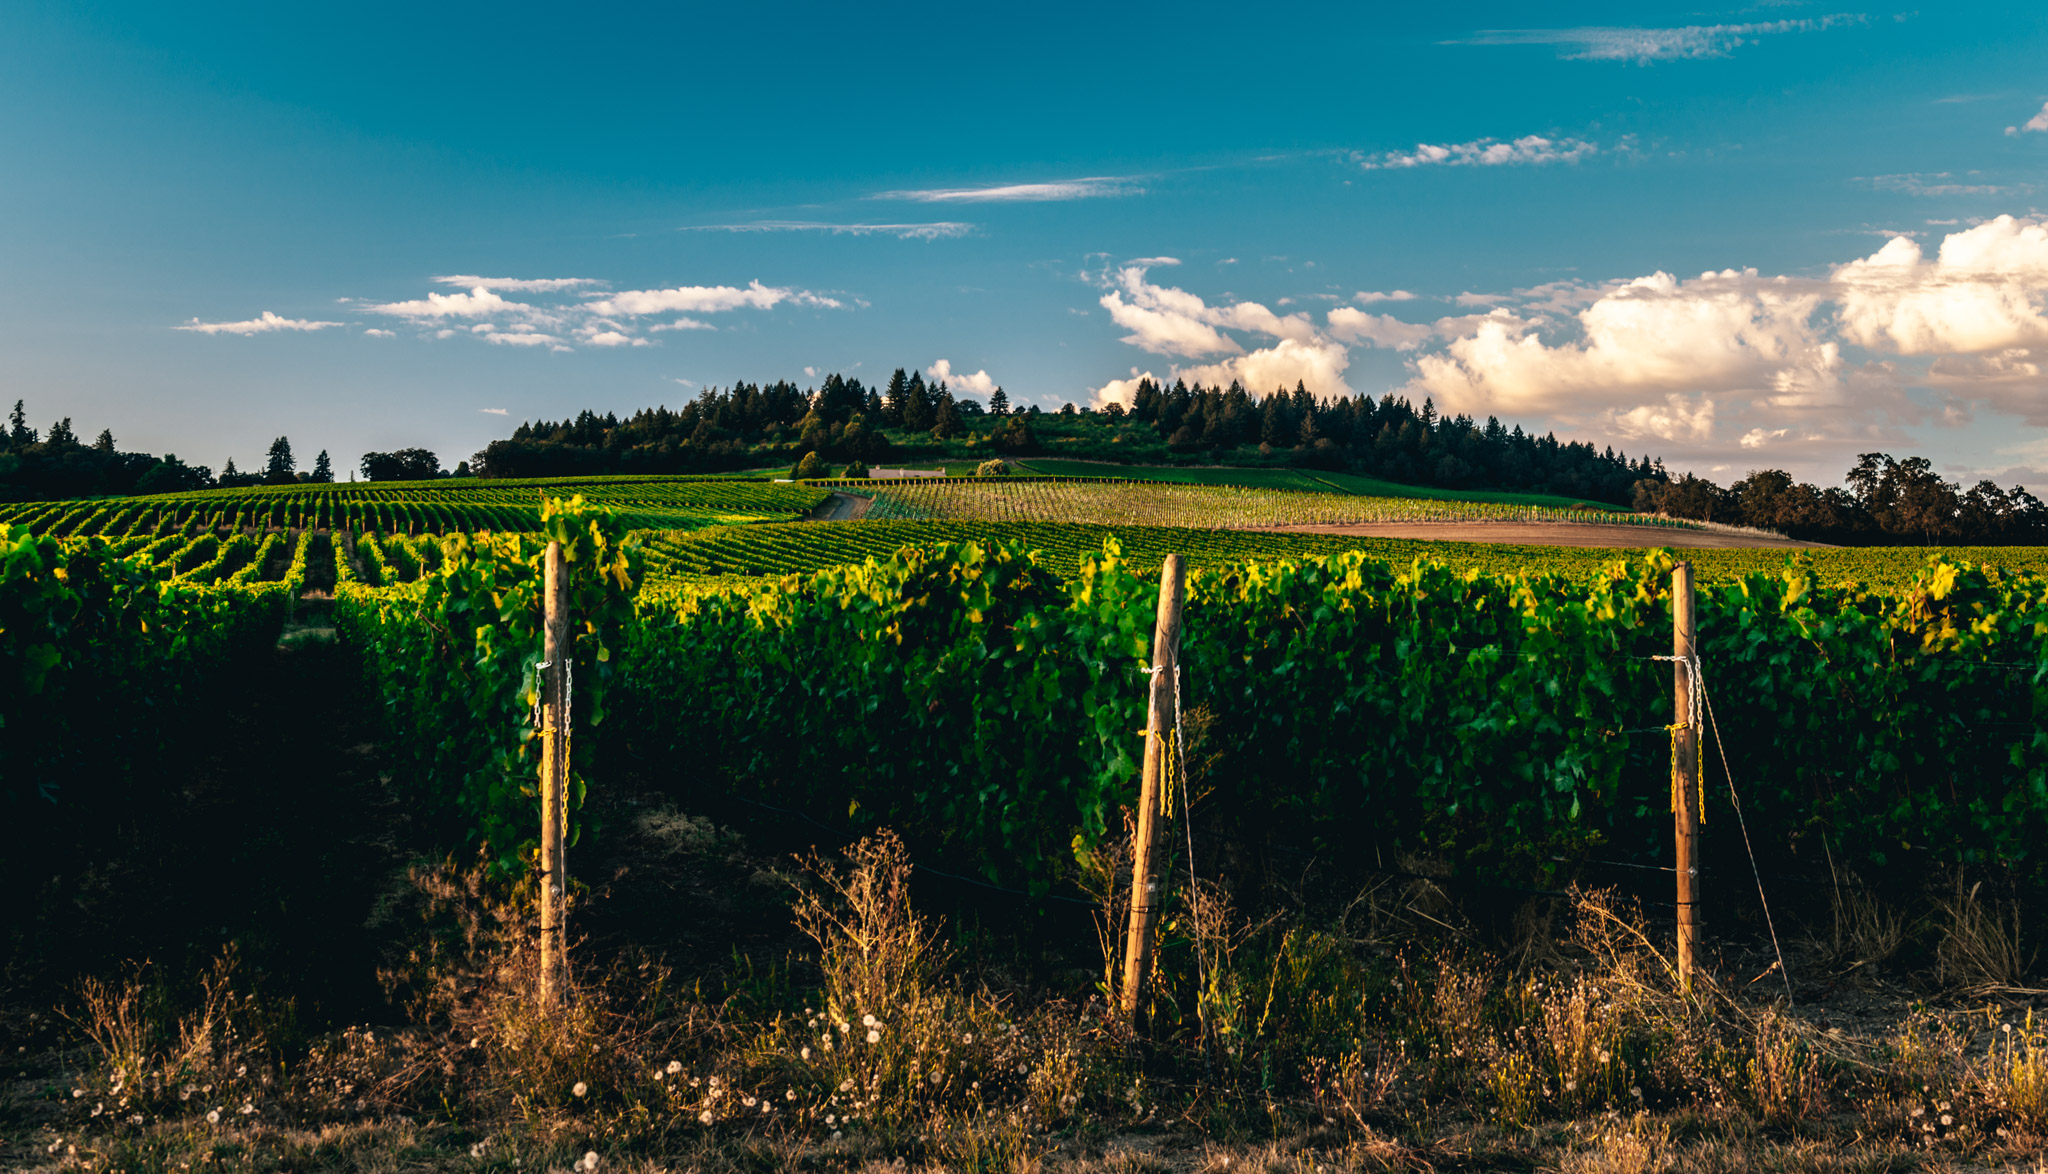 US : Oregon : Late afternoon in the Willamette Valley